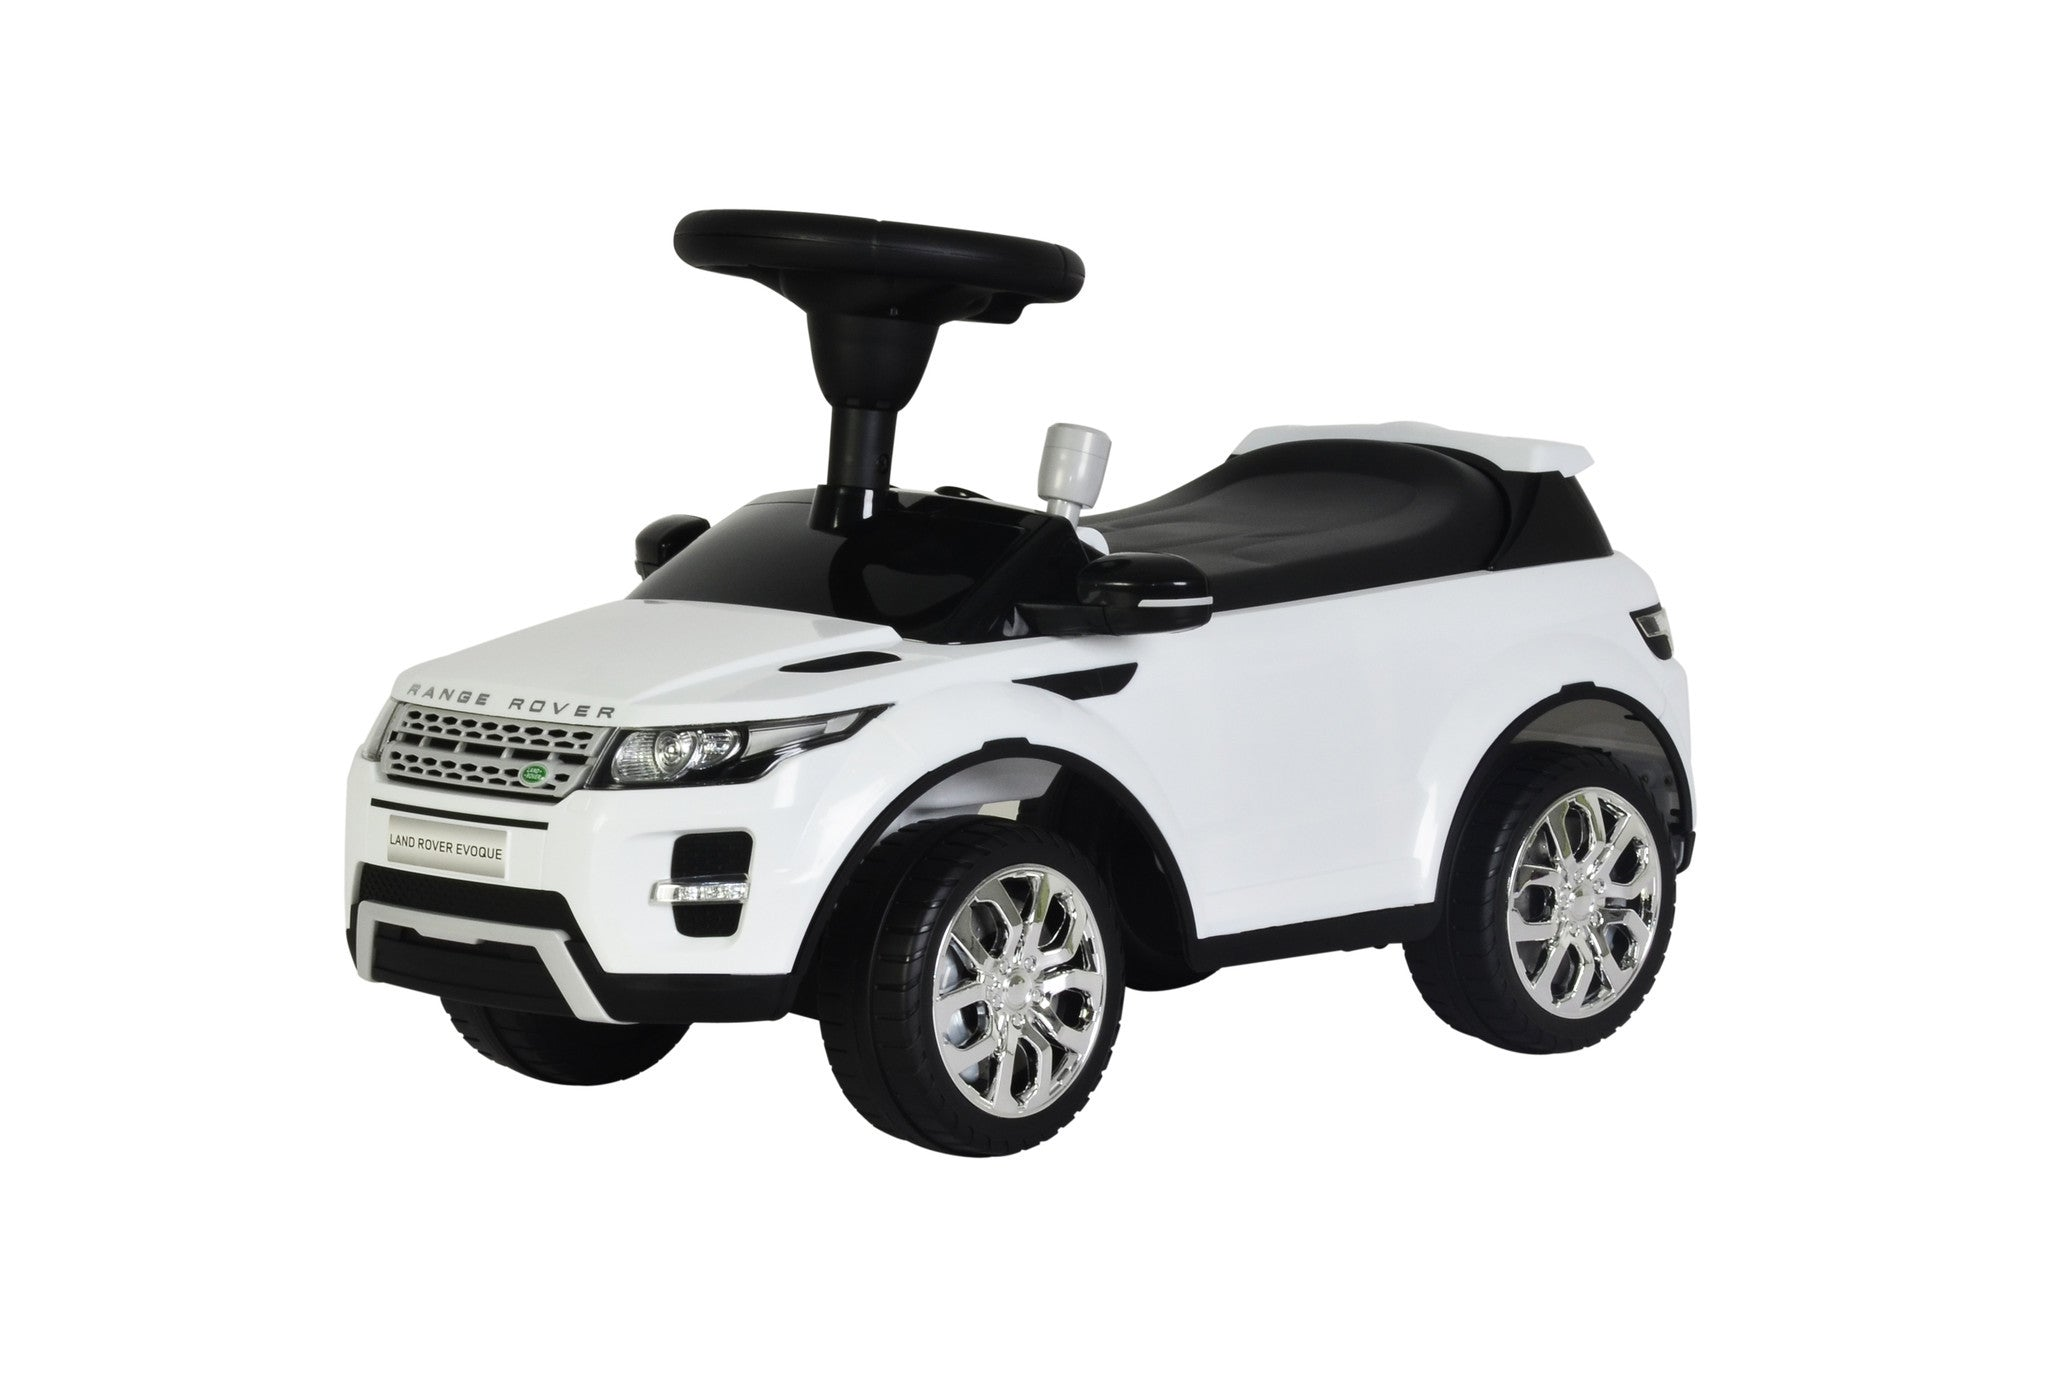 range rover evoque licensed manual ride on model 348 white ricco rh ricco toys rover ride on parts rover raider ride on mower manual